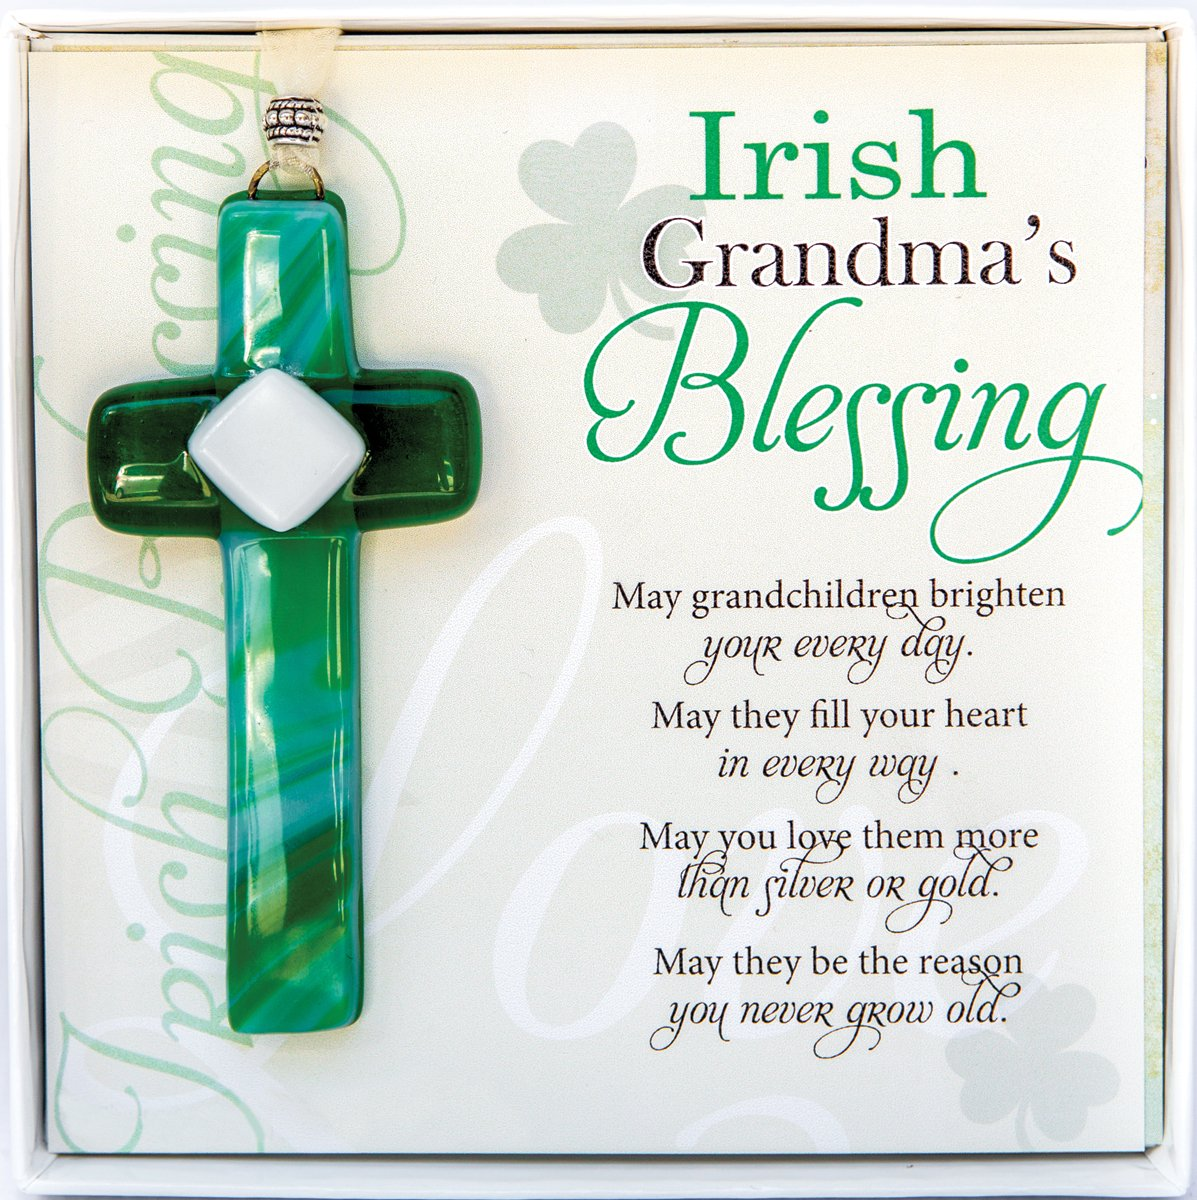 The Grandparent Gift Irish Grandma Gift Grandma Blessing Handmade Glass Cross